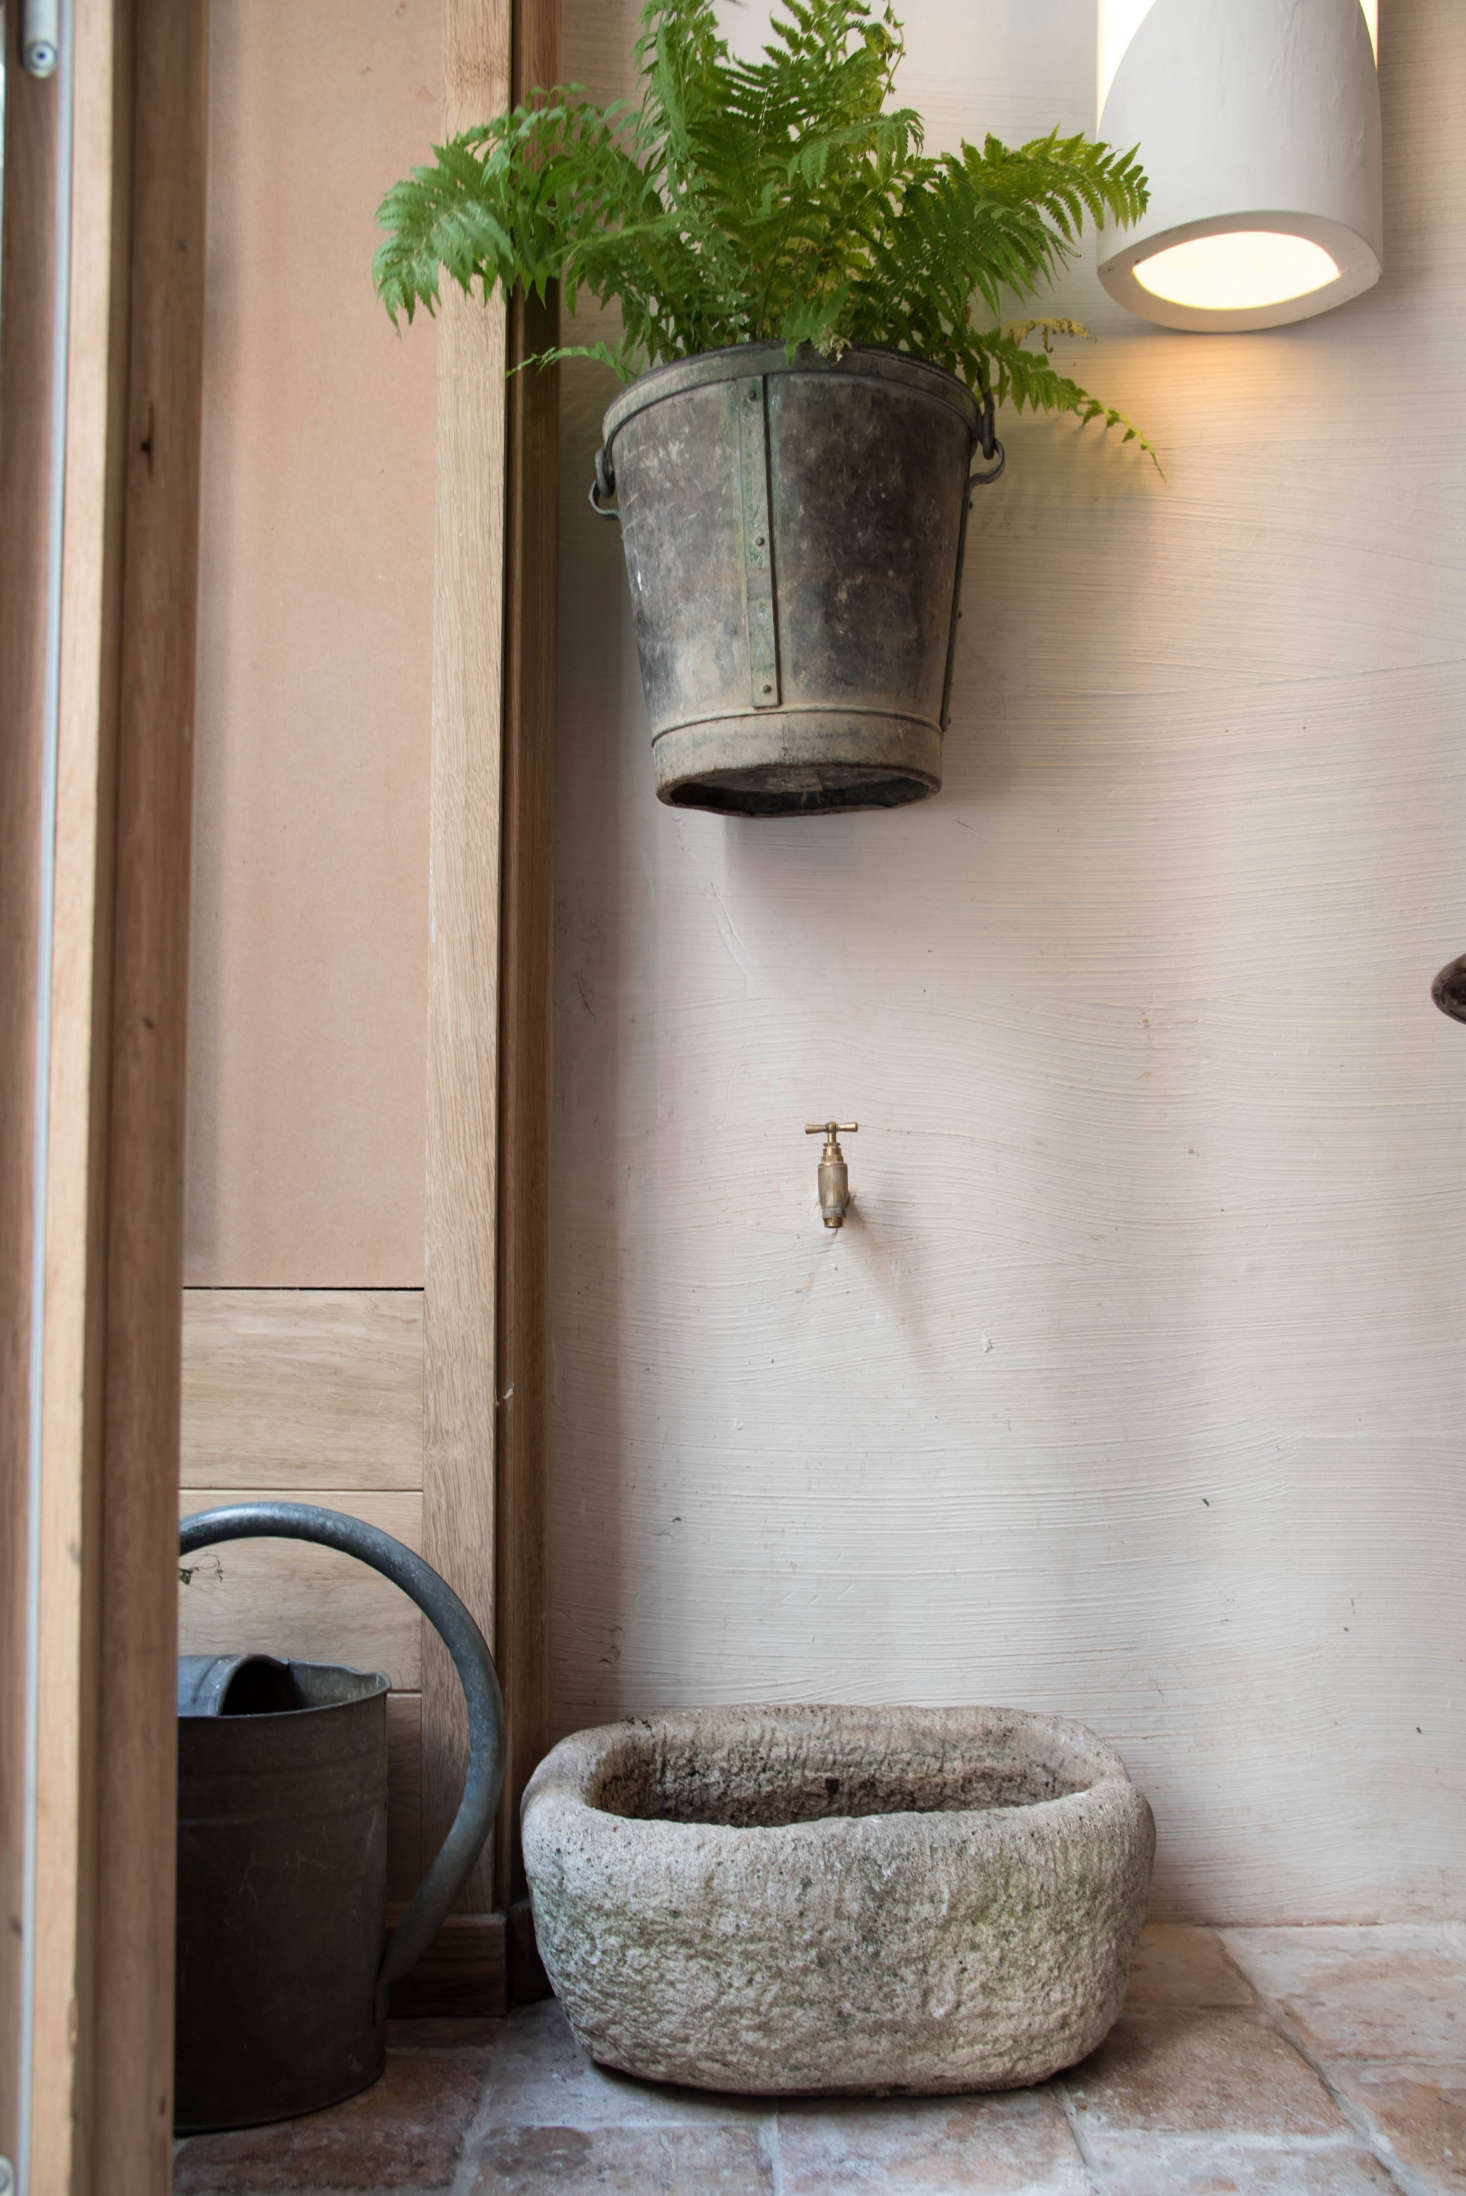 For a respite from the heat, add elements from the garden. In a quirky vignette by the front window: A copper spigot in the wall is positioned above a stone basin, a flea market find which will soon house herbs.